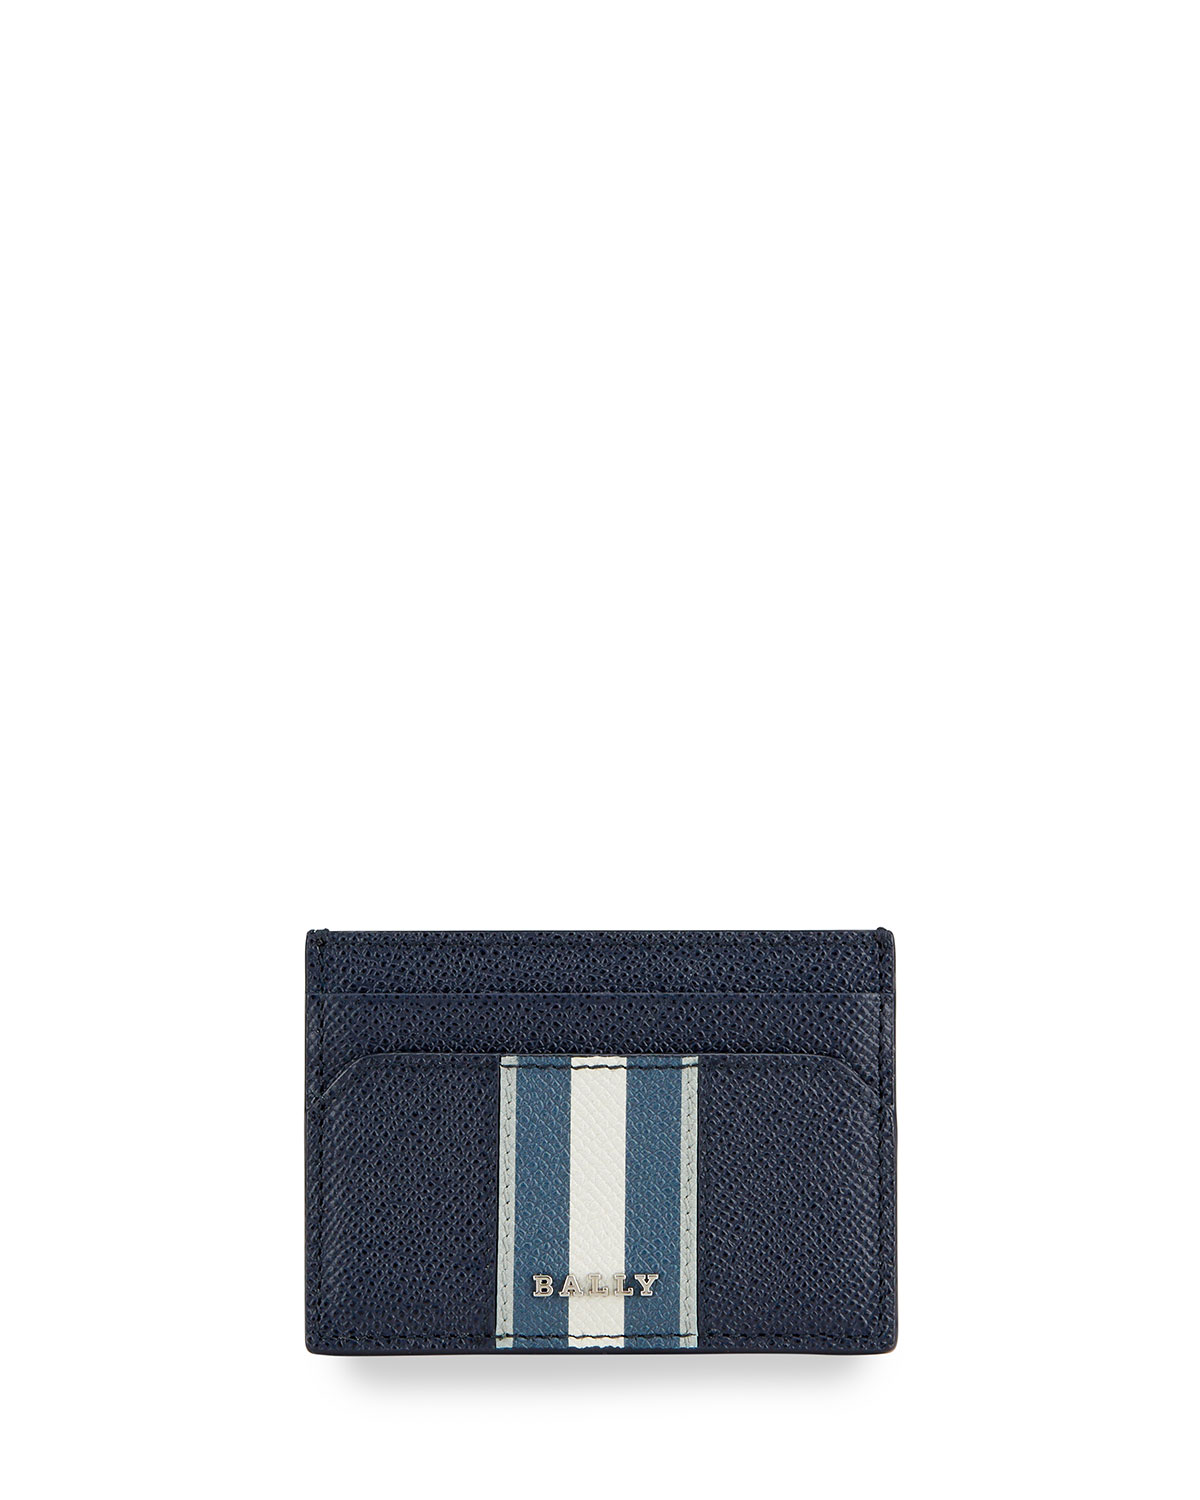 Bally MEN'S TRAINSPOTTING LEATHER CARD CASE